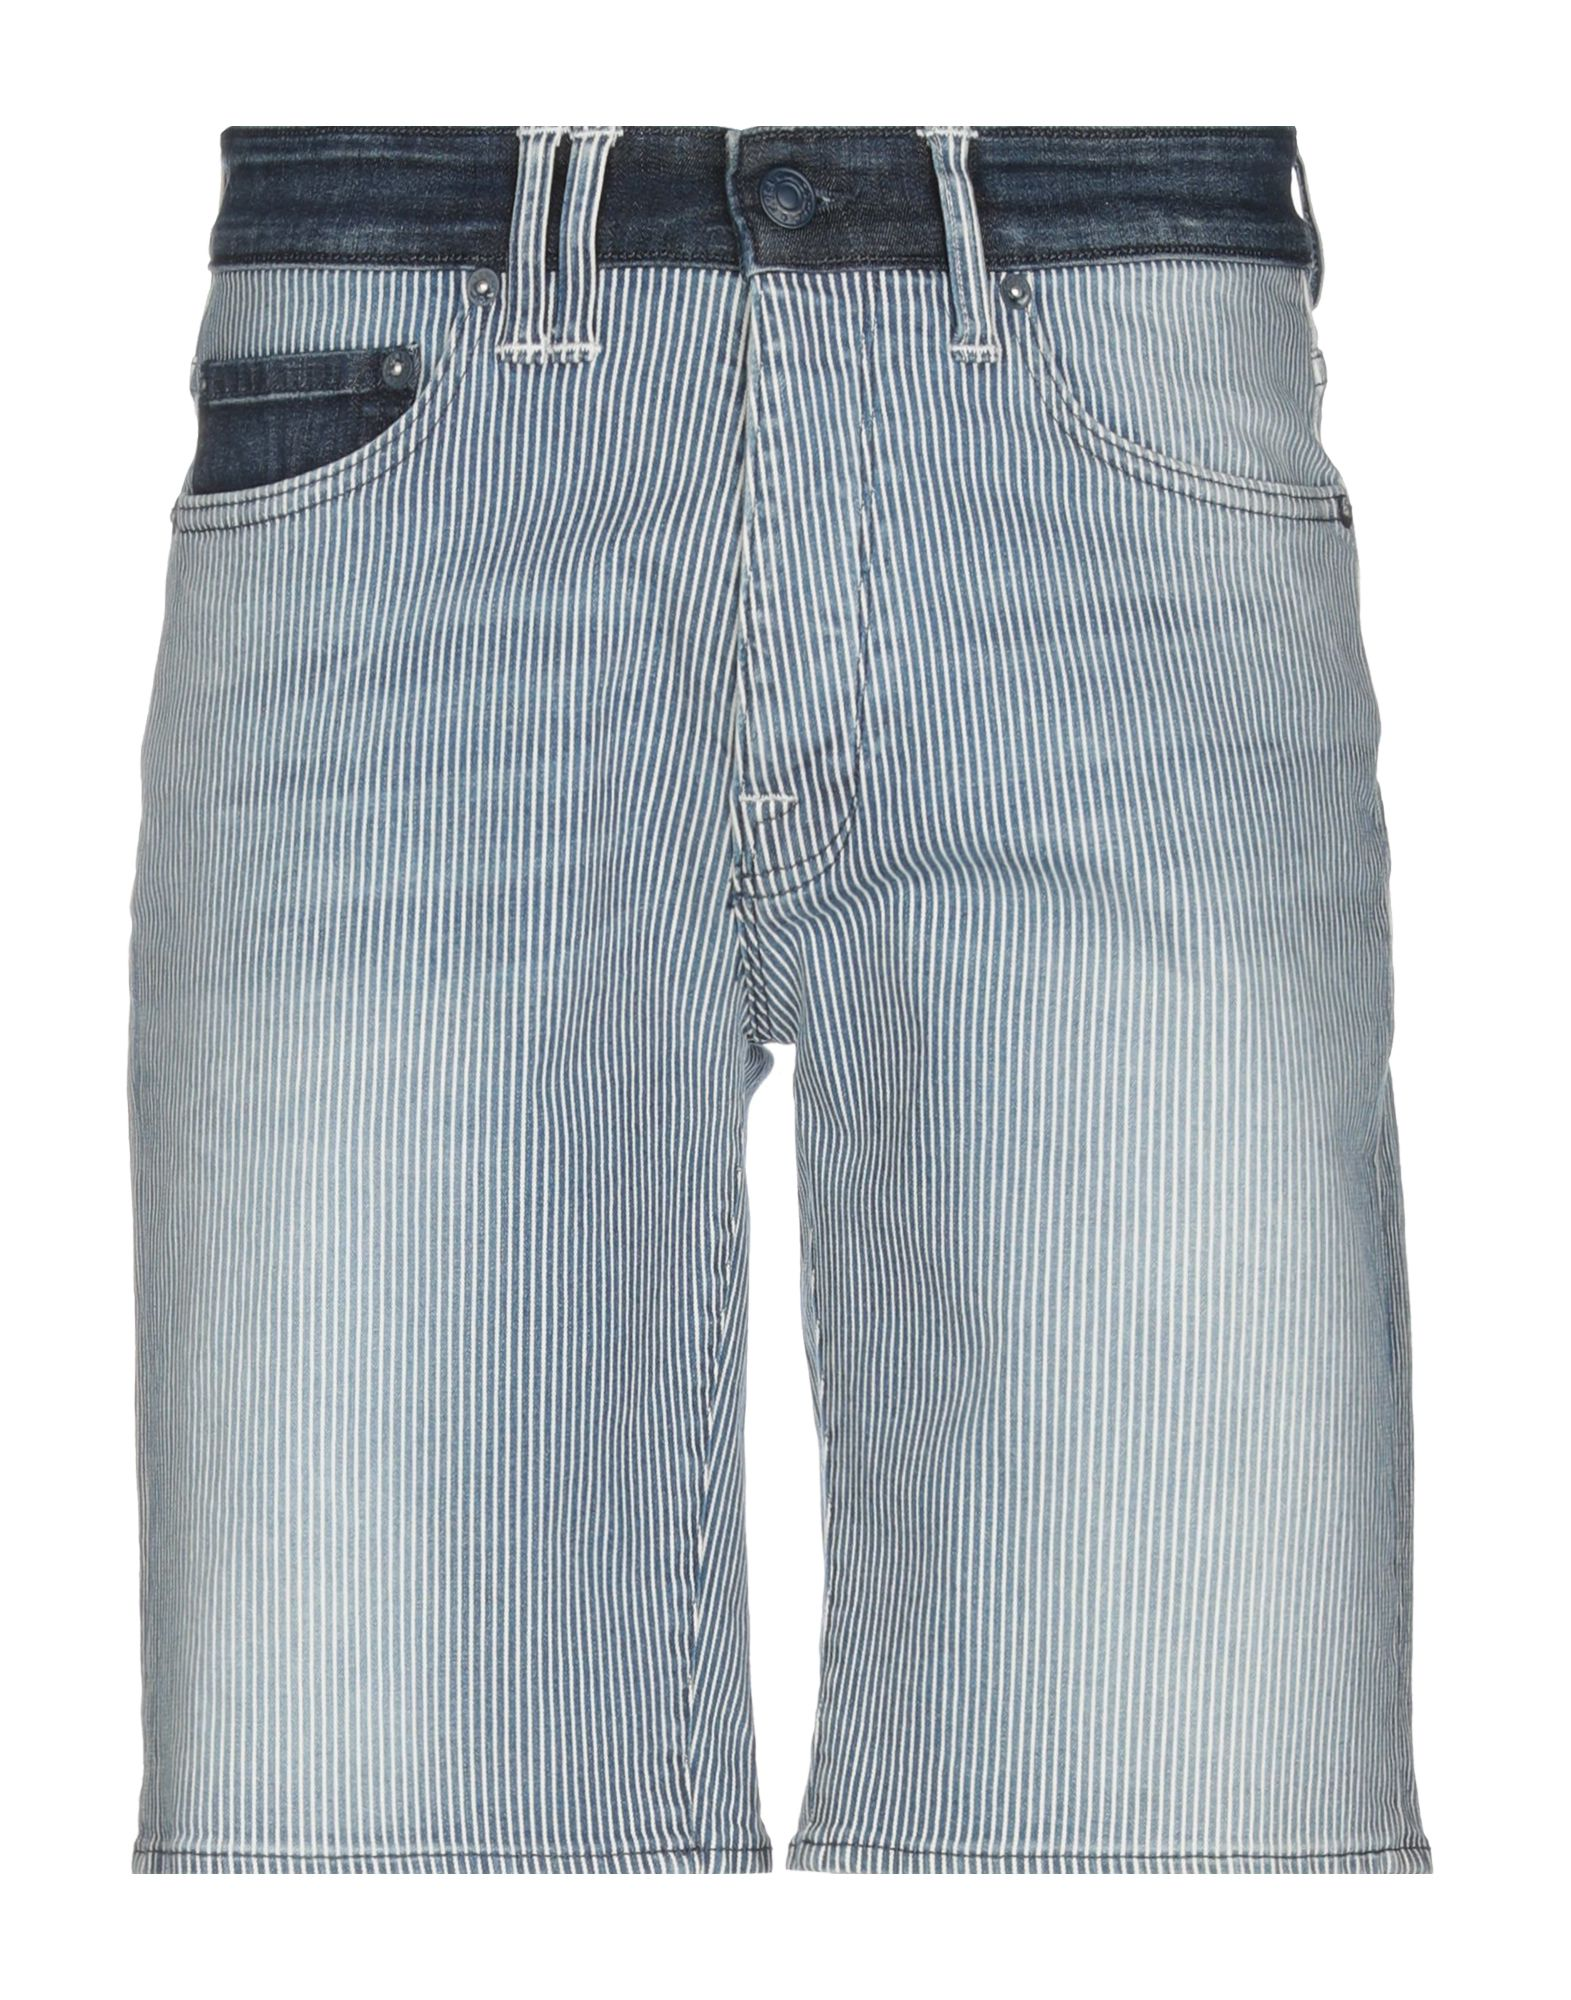 Shorts Jeans Jeans Cycle uomo - 42709795JL  bester Ruf